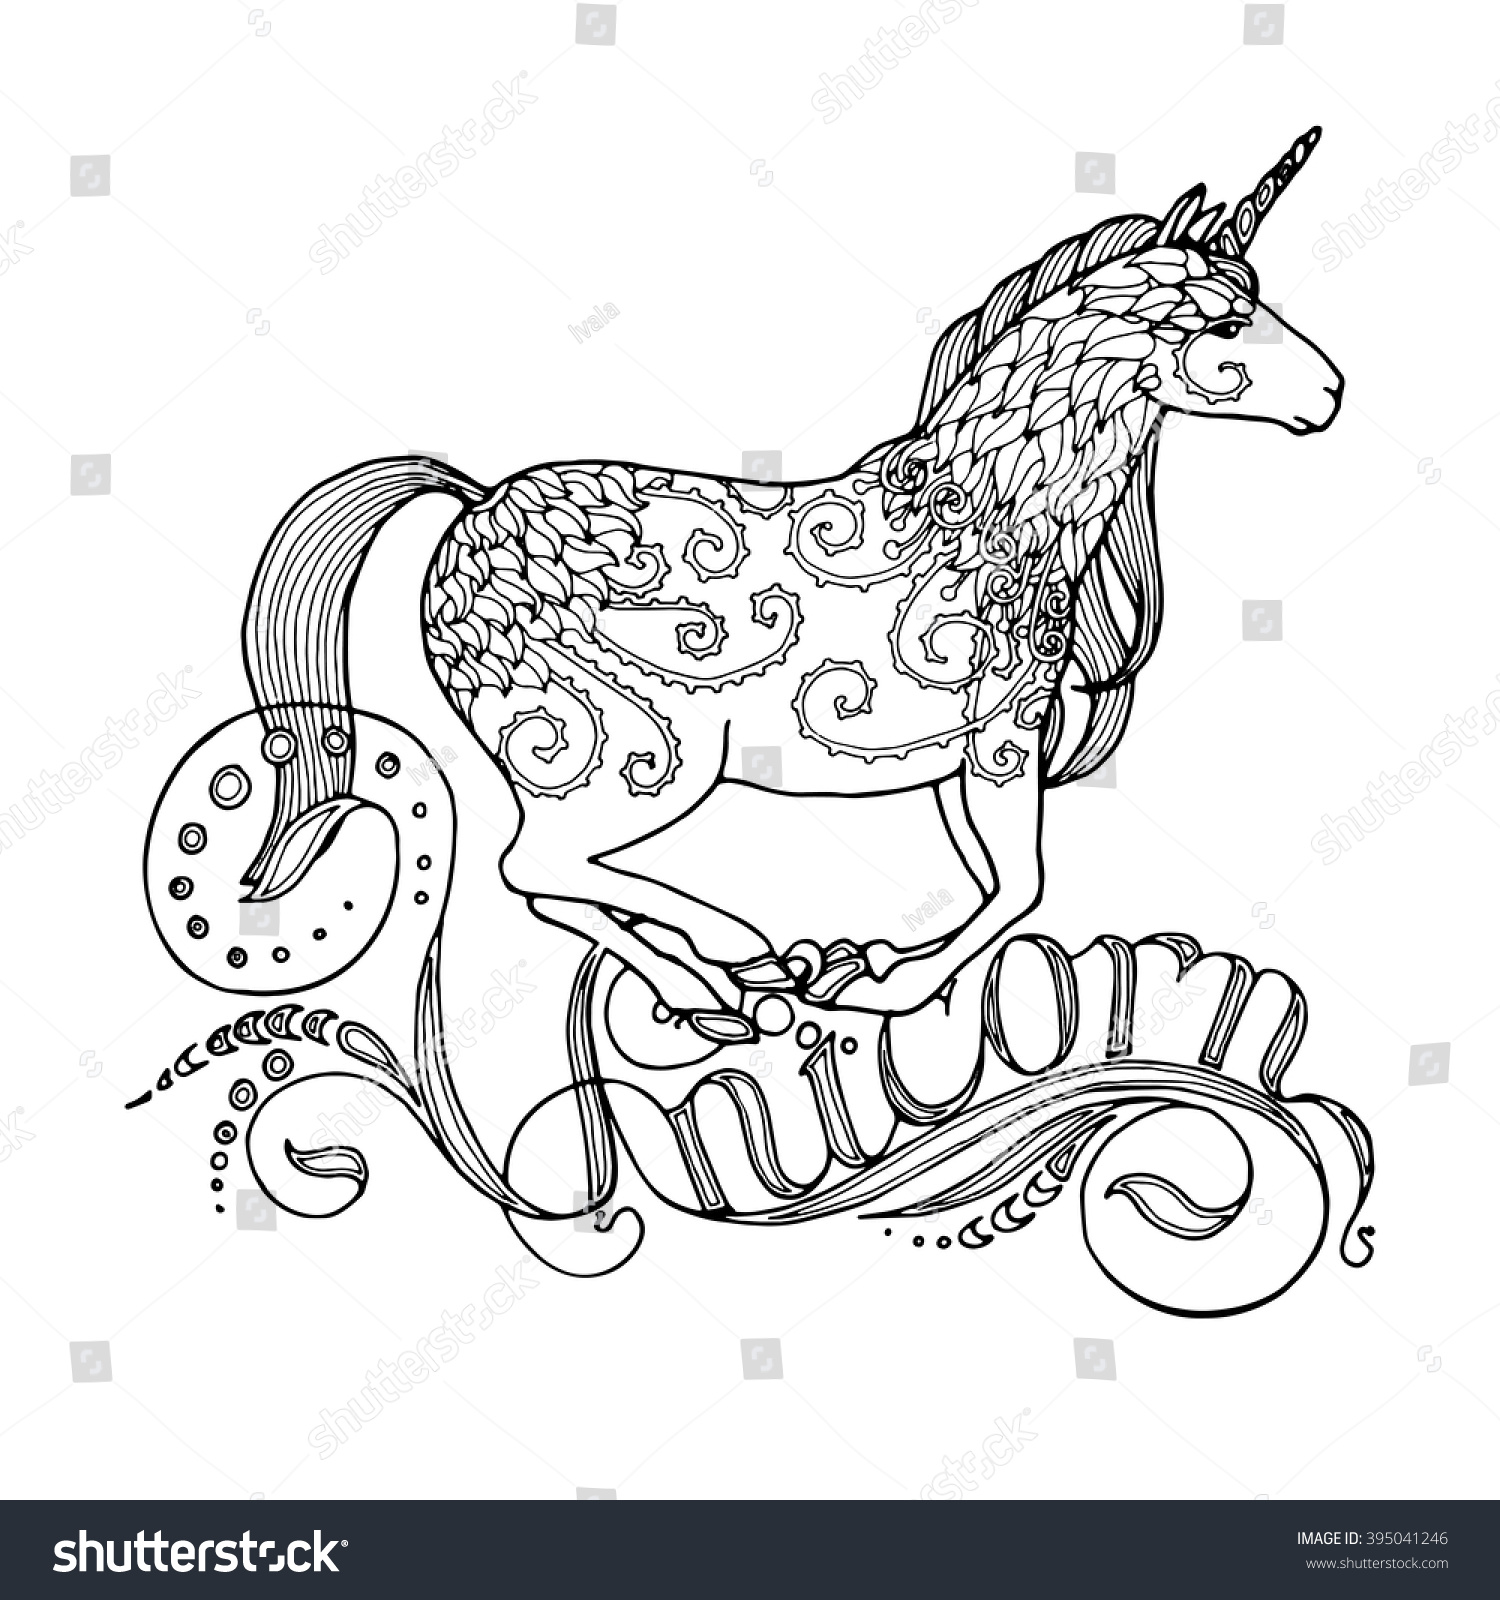 Running Unicorn Writing Fairy Page Adult Stock Vector ...